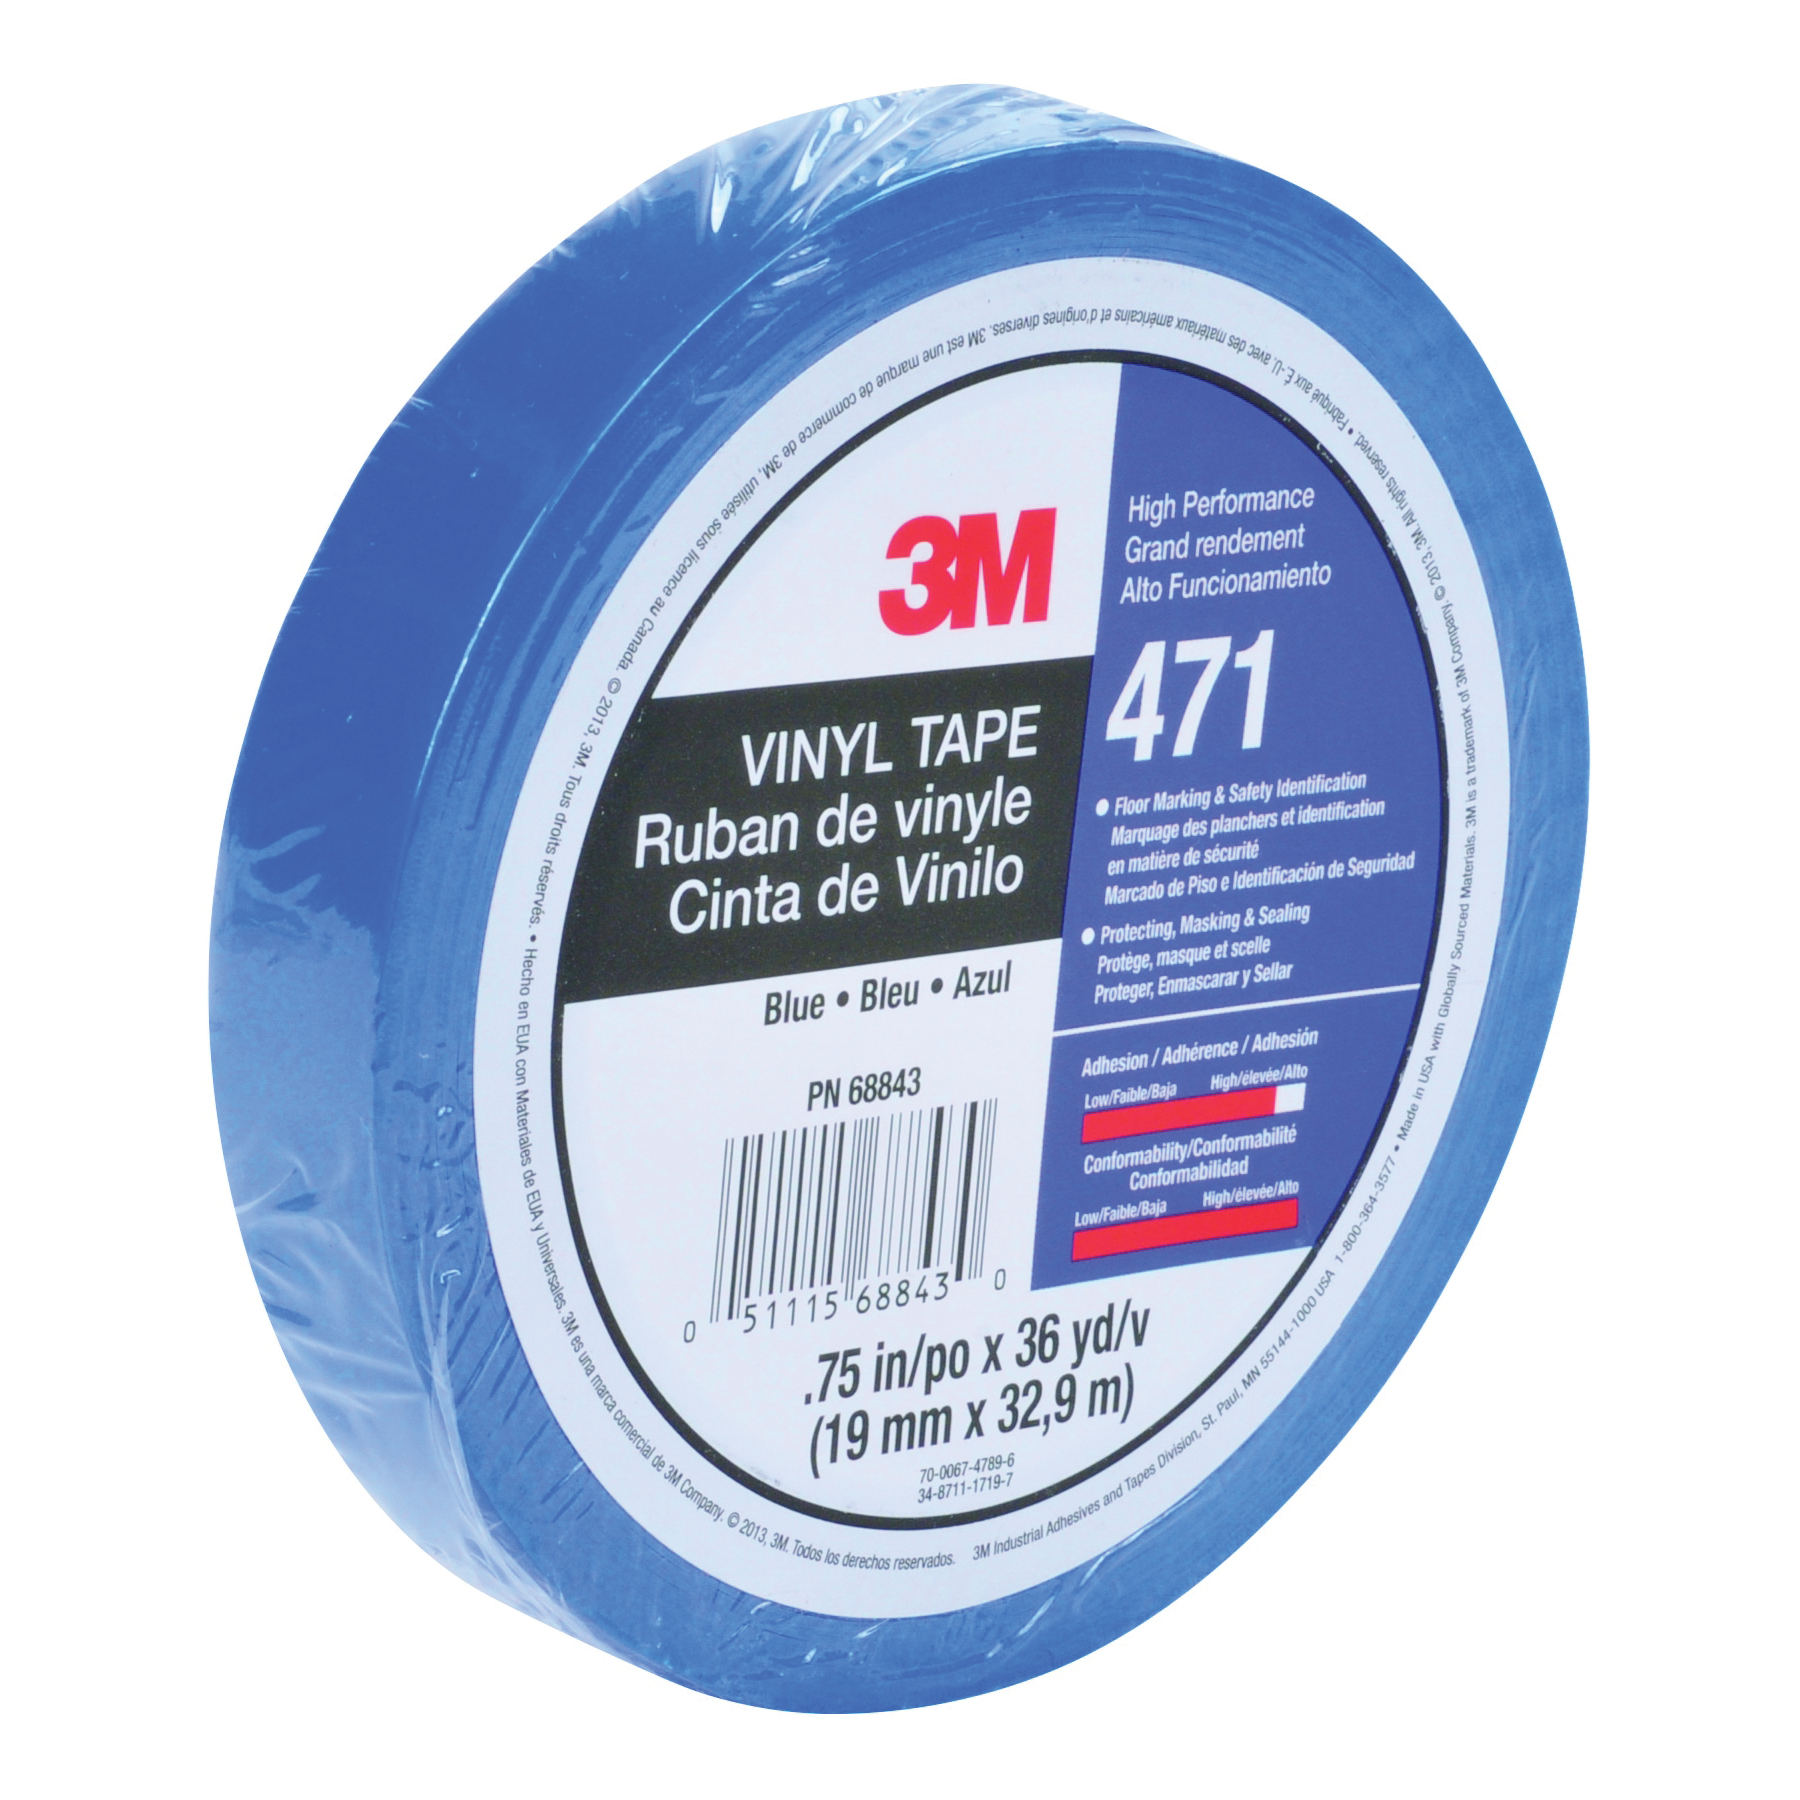 3M™ 021200-85611 High Performance Vinyl Tape, 36 yd L x 3/8 in W, 5.2 mil THK, Rubber Adhesive, Vinyl Backing, Blue